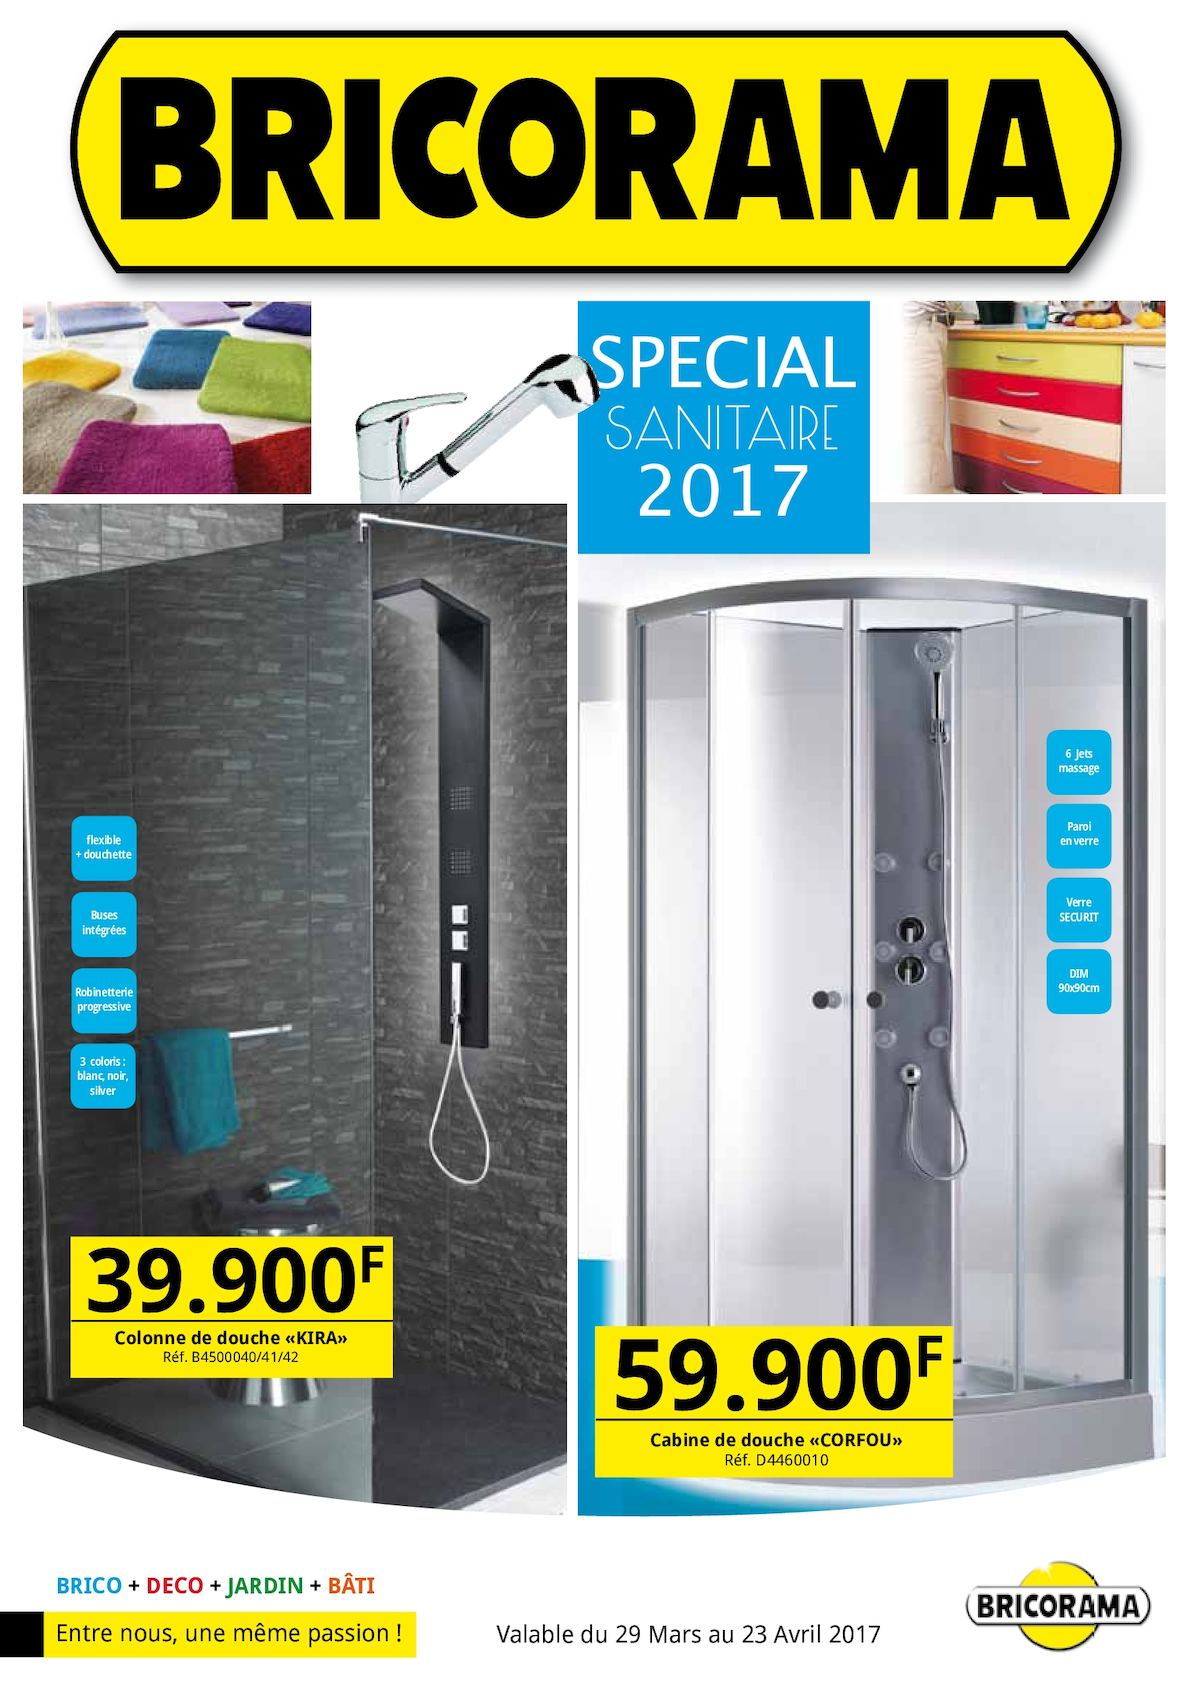 Calam o catalogue special sanitaire 2017 bricorama for Brico bati jardin